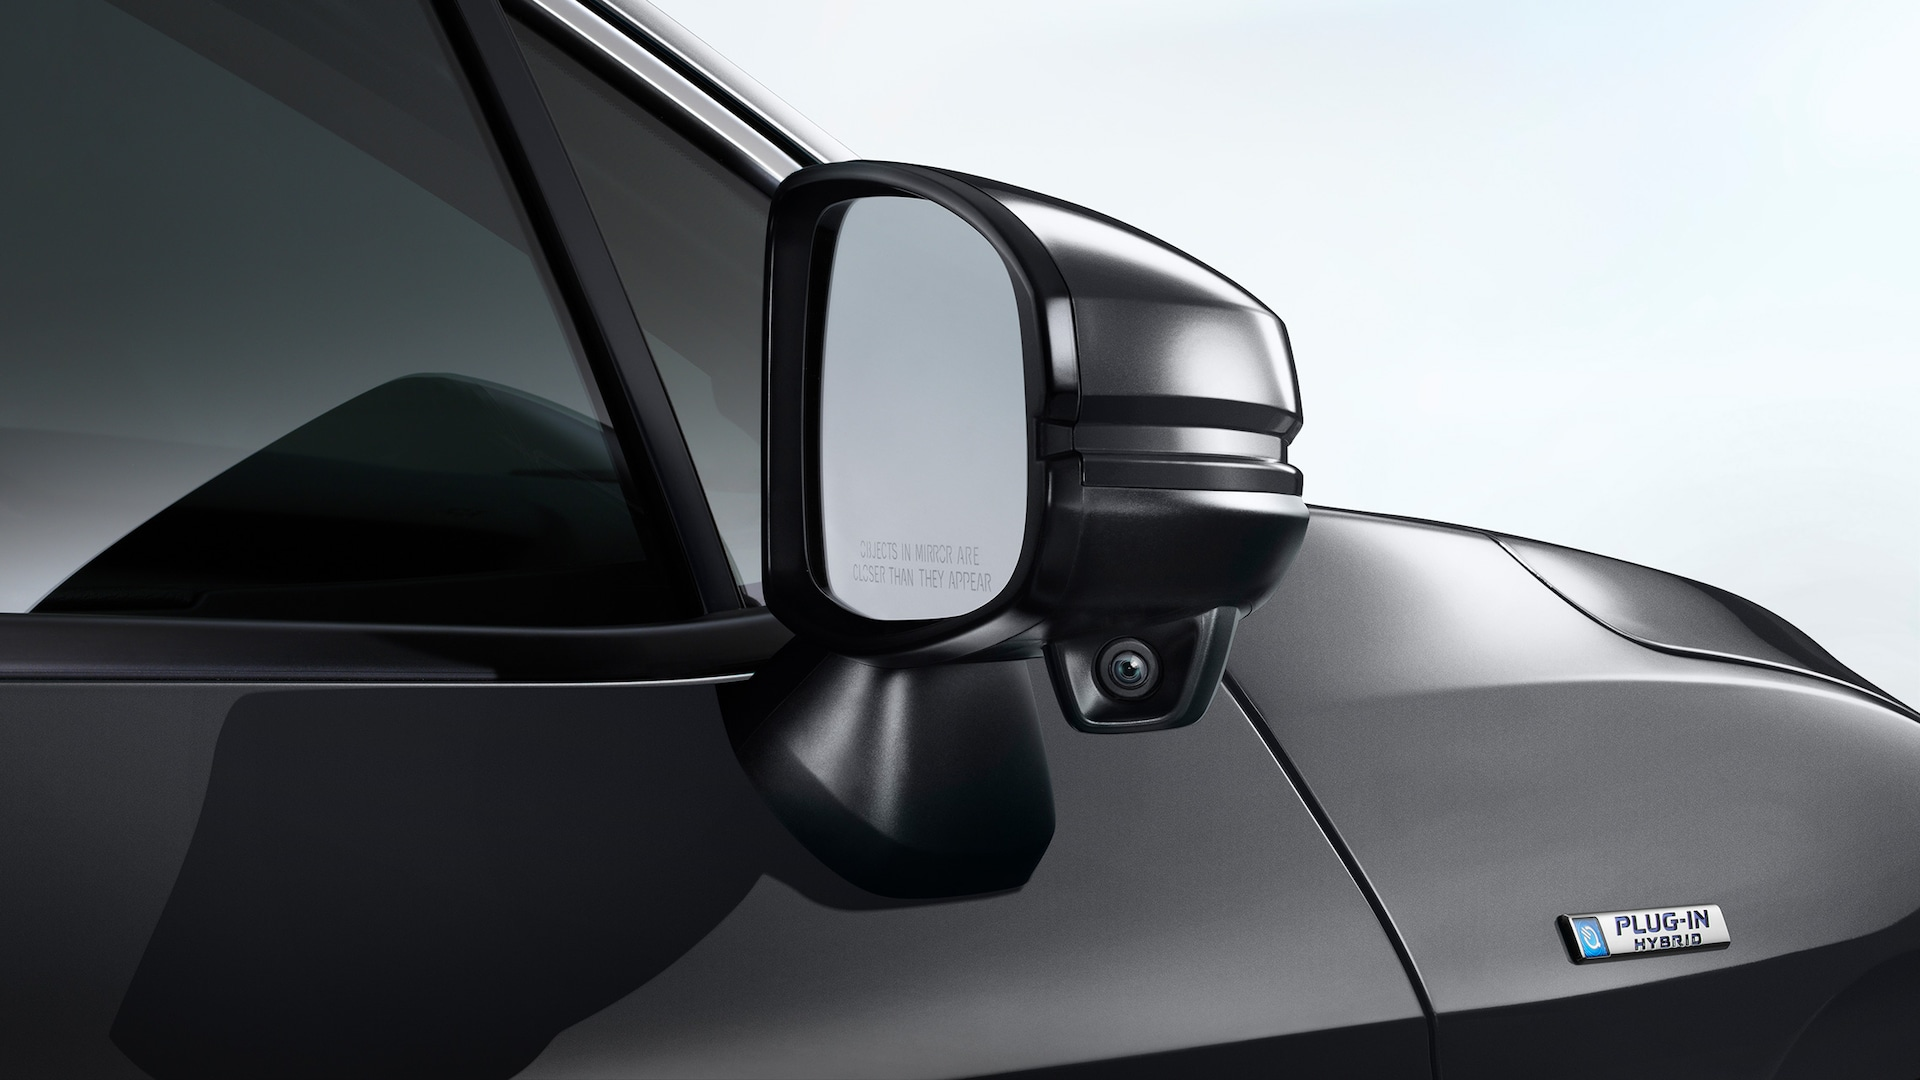 Detail of Honda LaneWatch™ camera on passenger-side mirror.